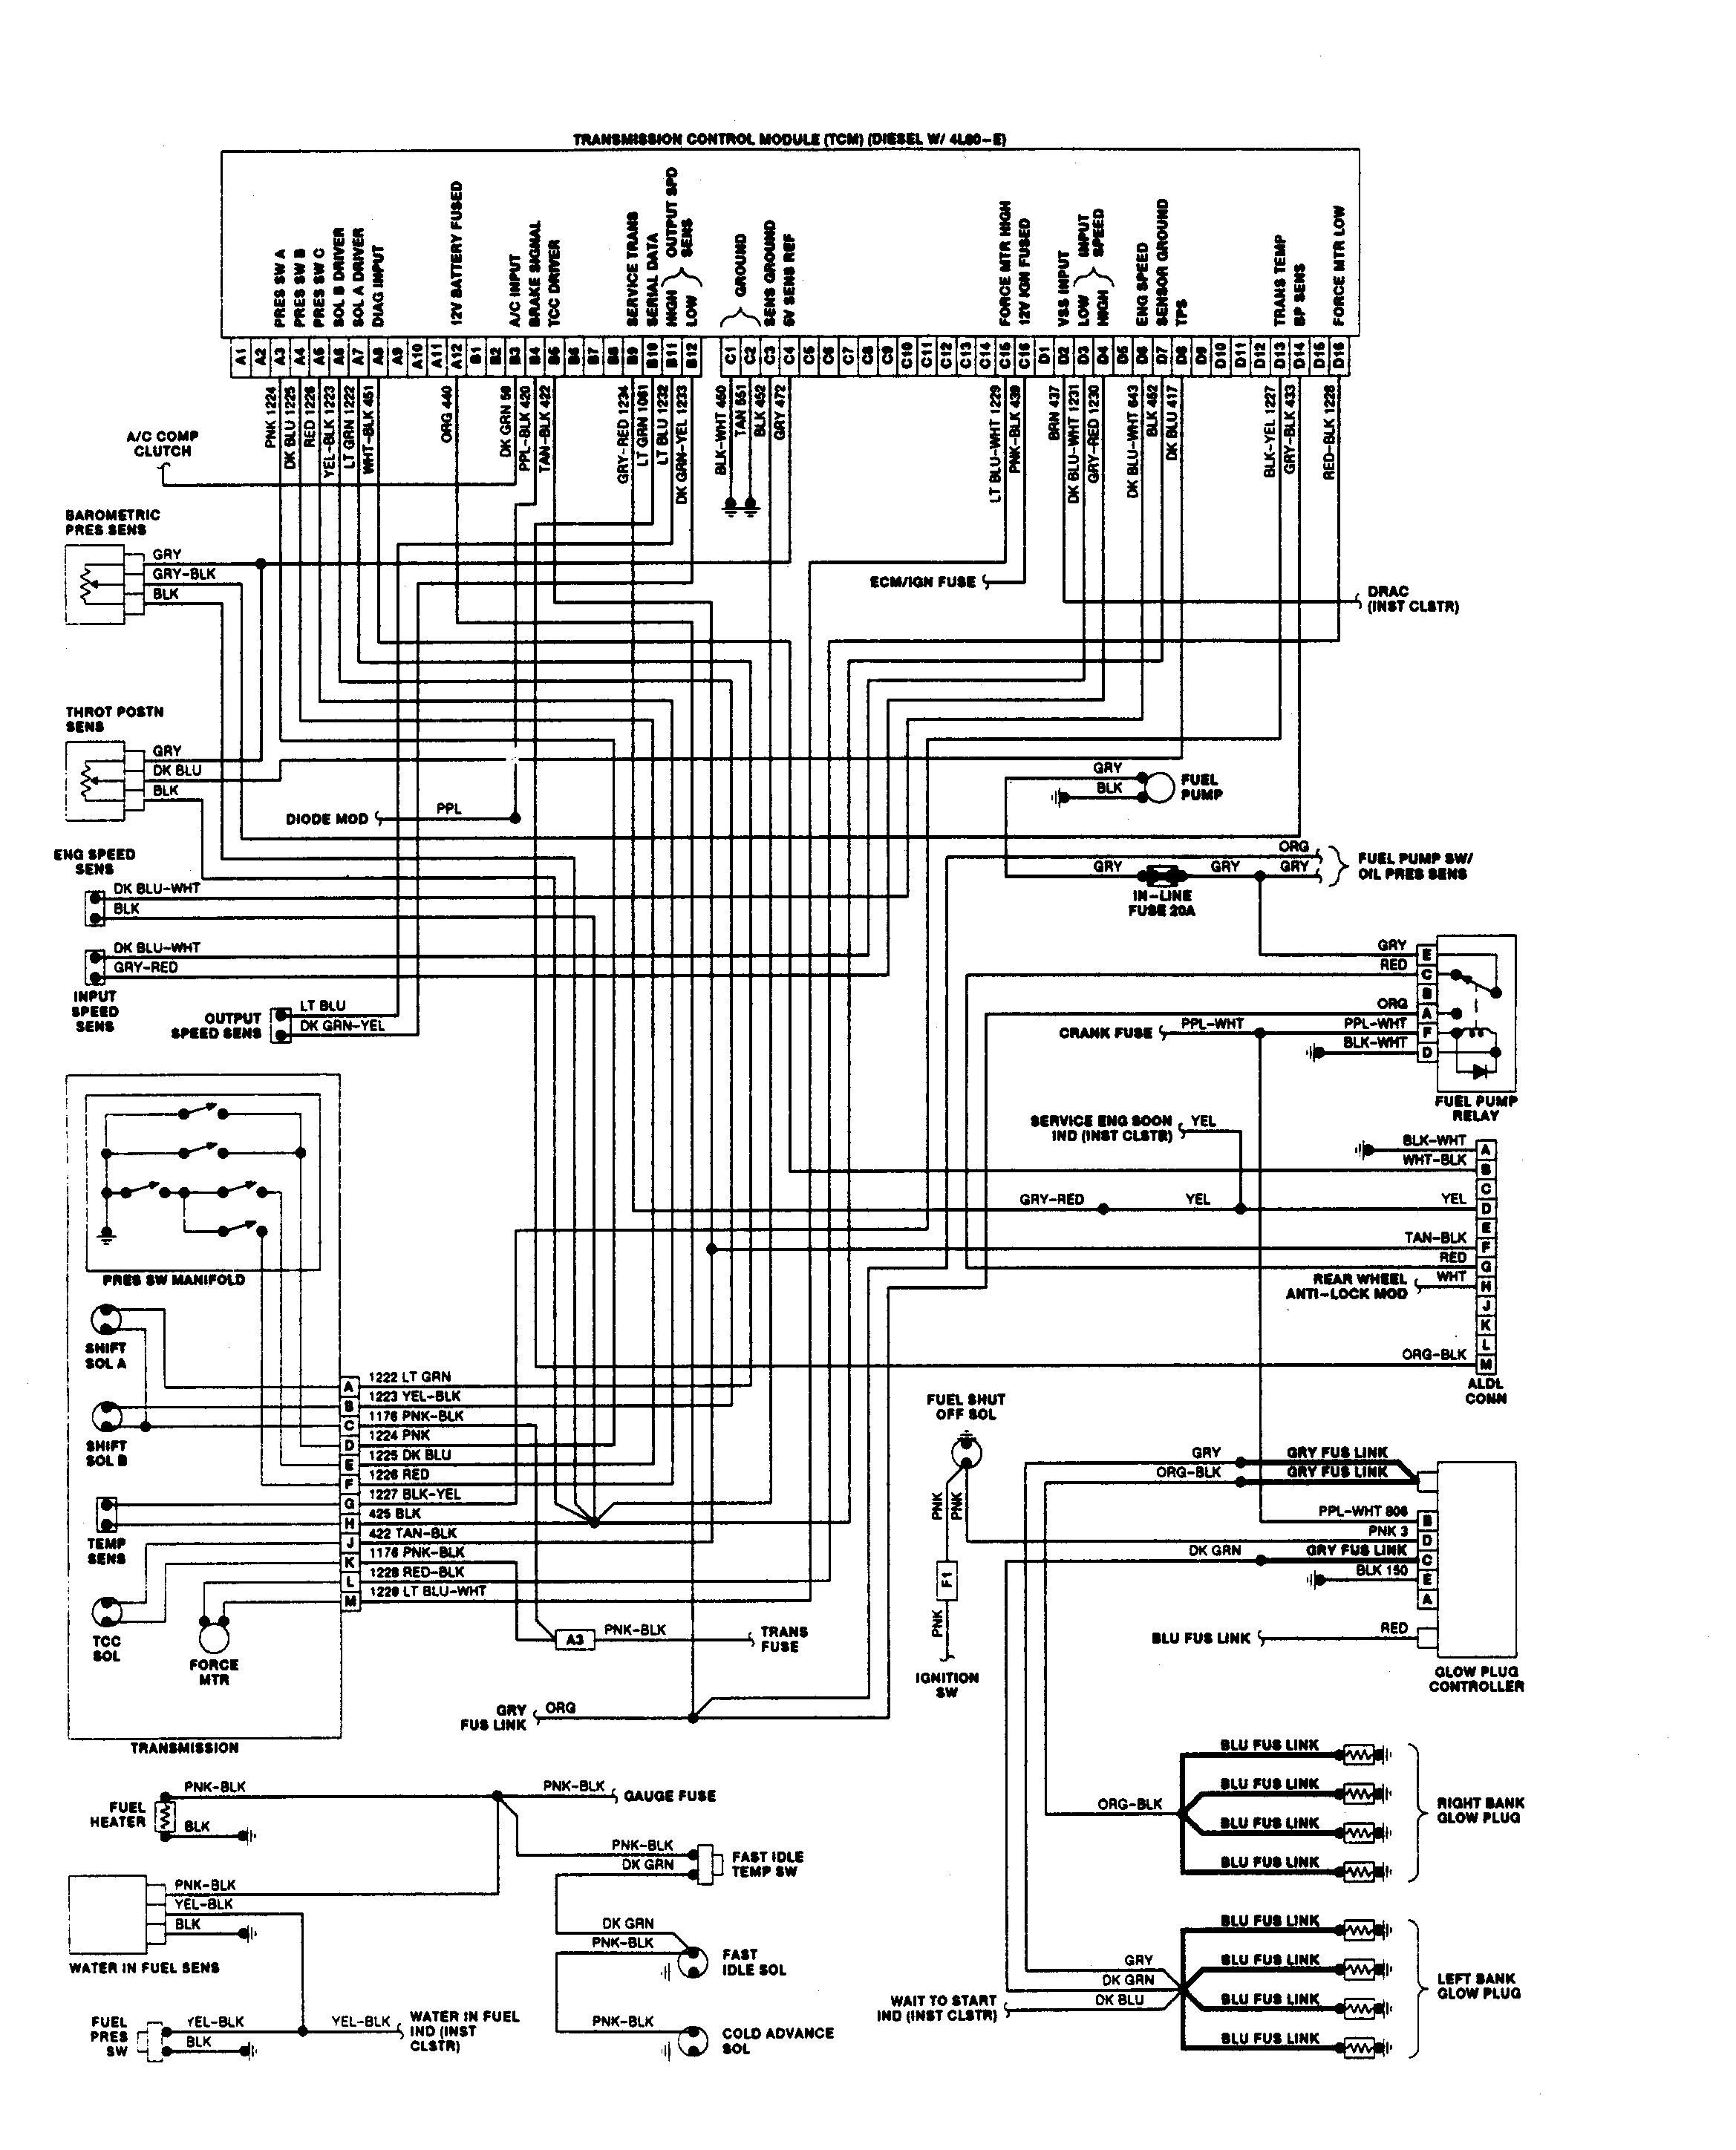 1990 Chev P30 Wiring Diagram Simple C1500 V8 1991 Chevy Diagrams Schematics Topkick